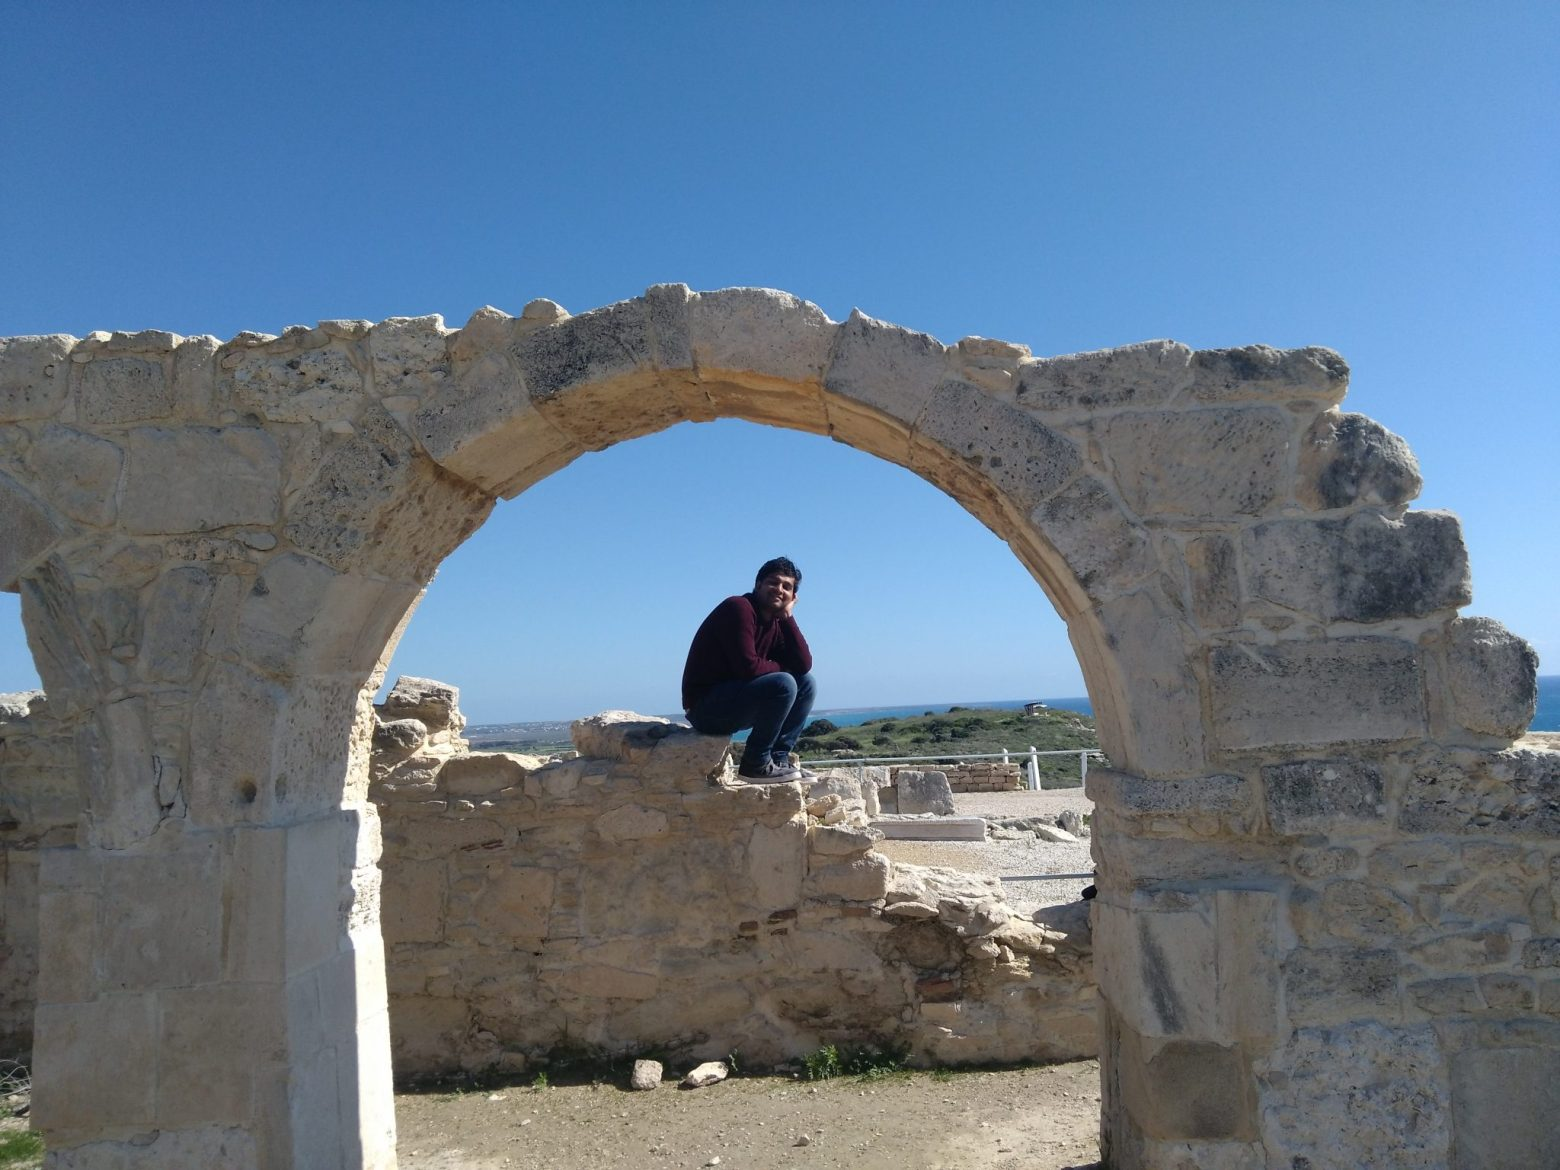 Ancient Kourion: Archeological Site